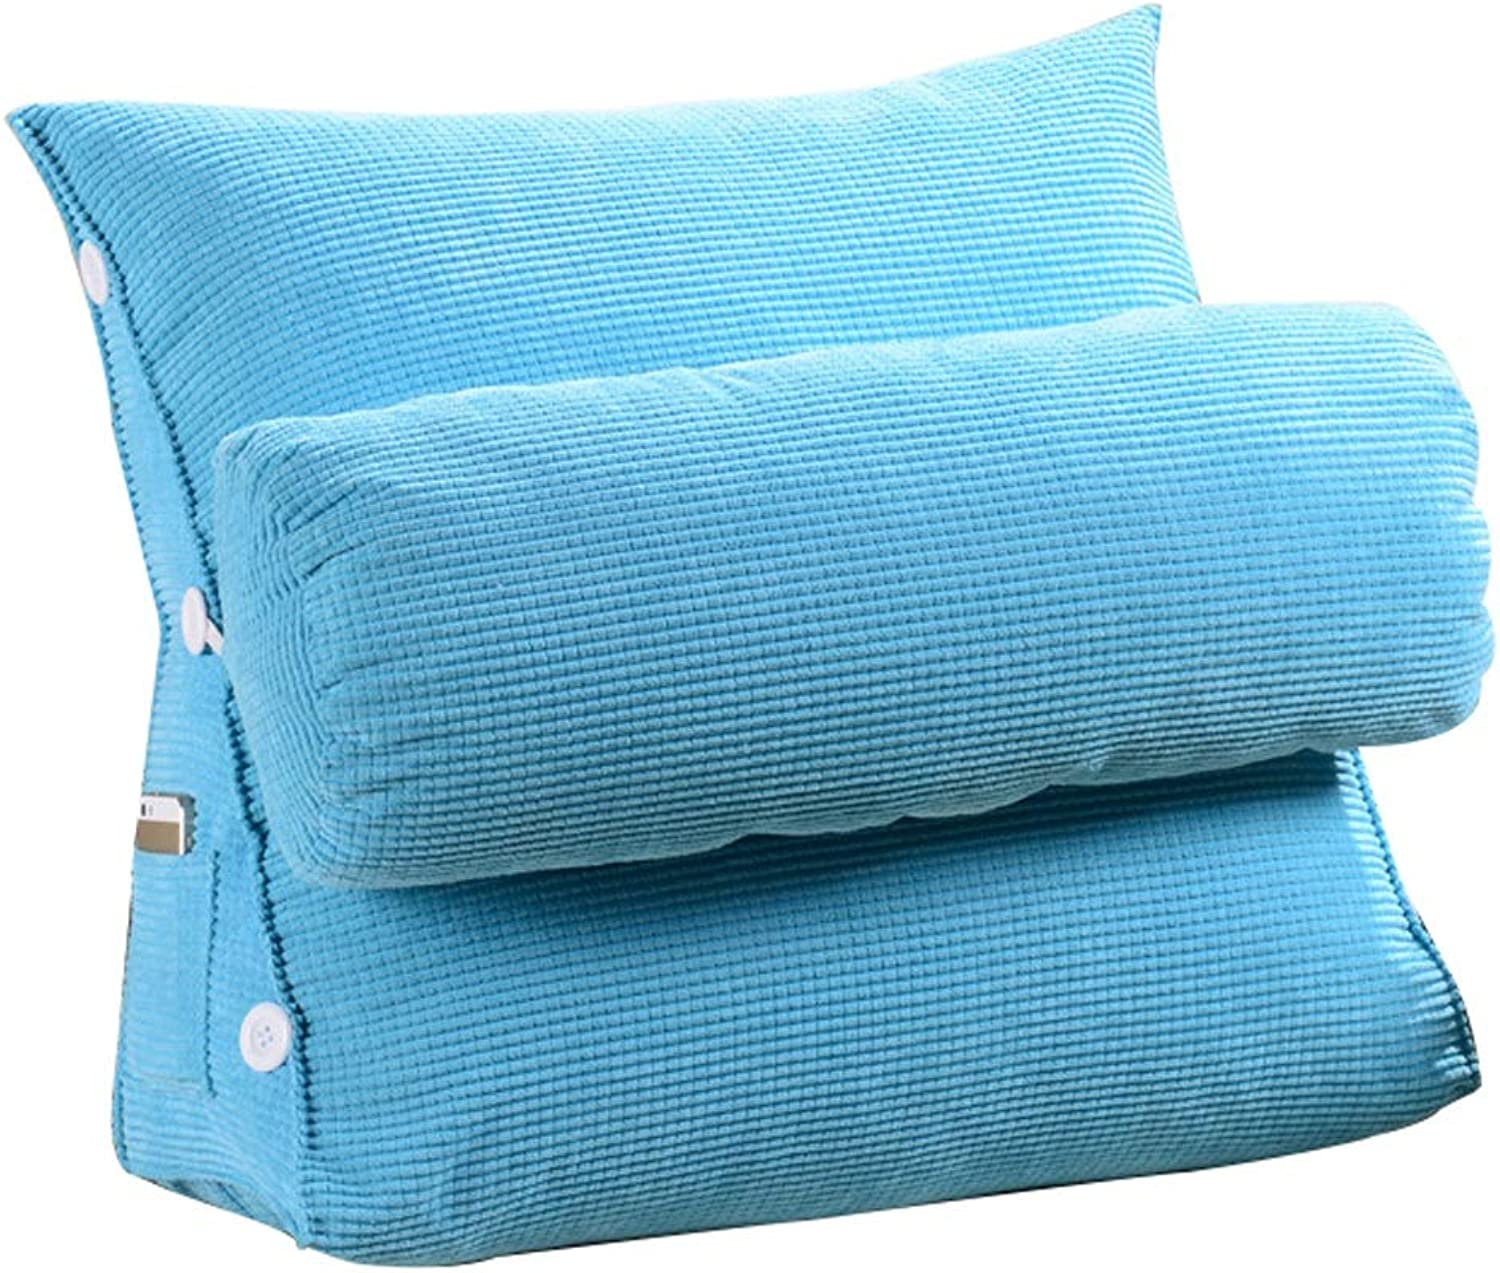 Triangle pad backrest pad Velvet Pillow Sofa Bed Office Chair Rest cushion (color   Light bluee, Size   L)